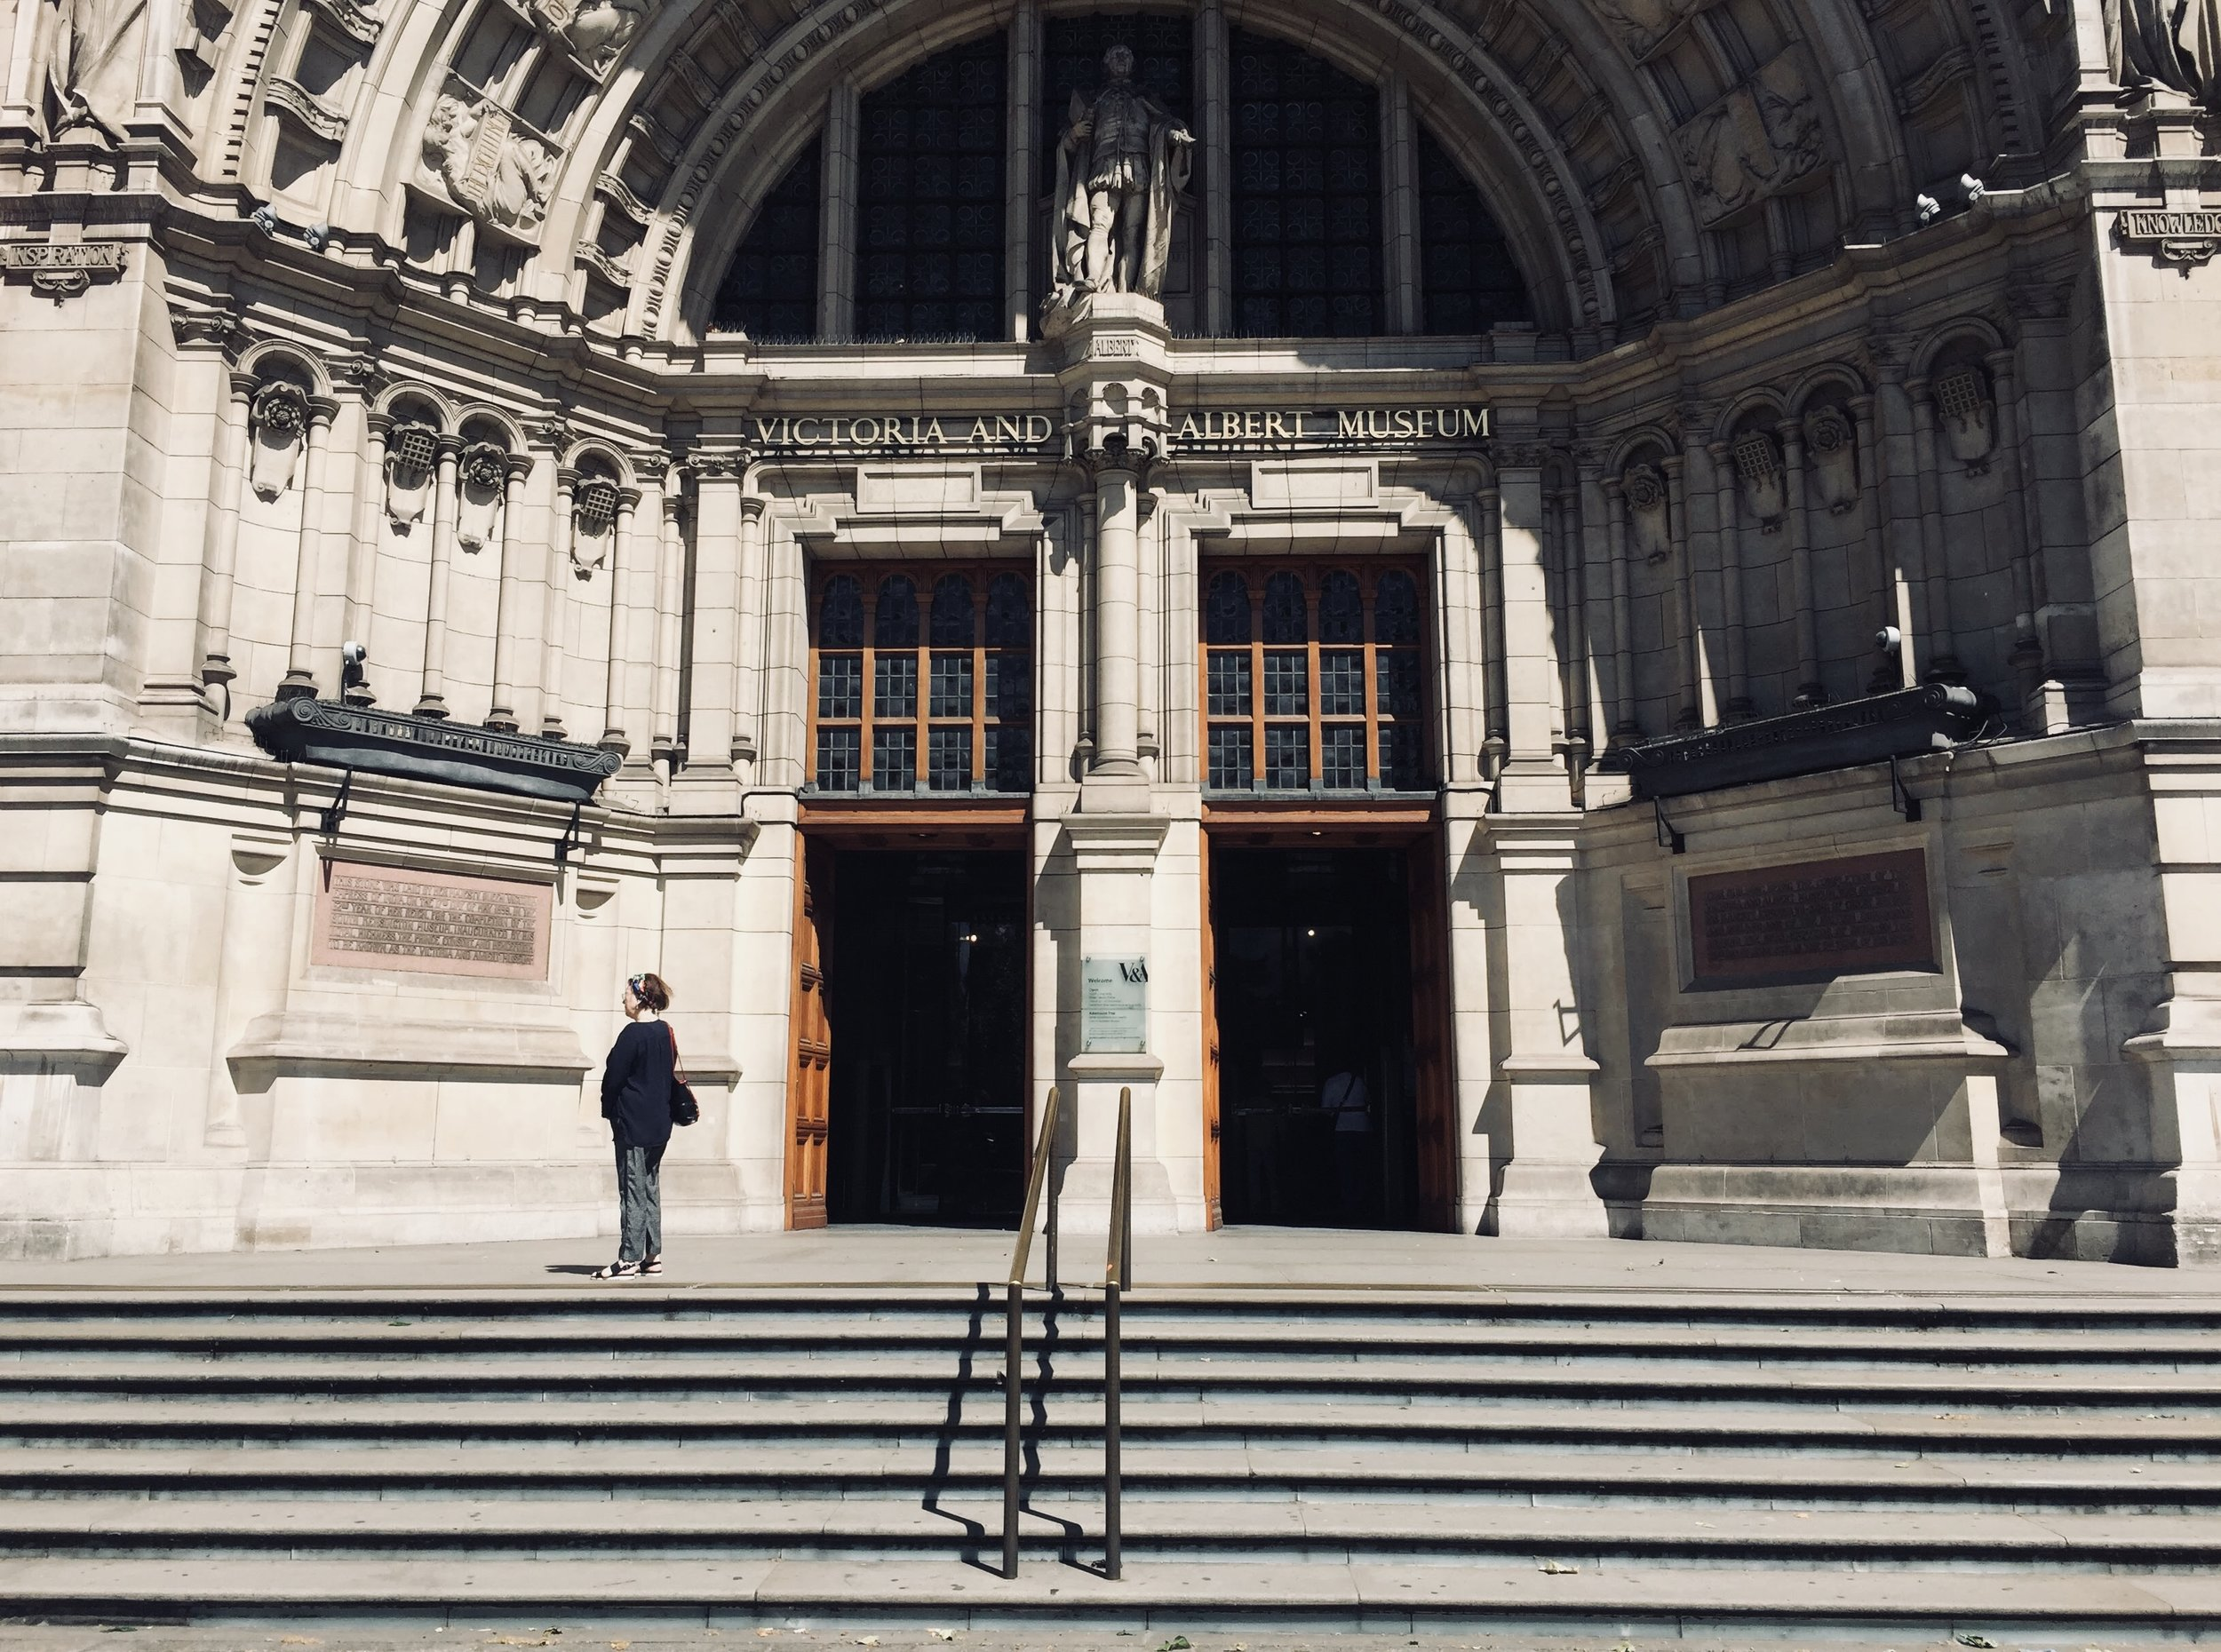 travel guide to london: Victoria and Albert Museum